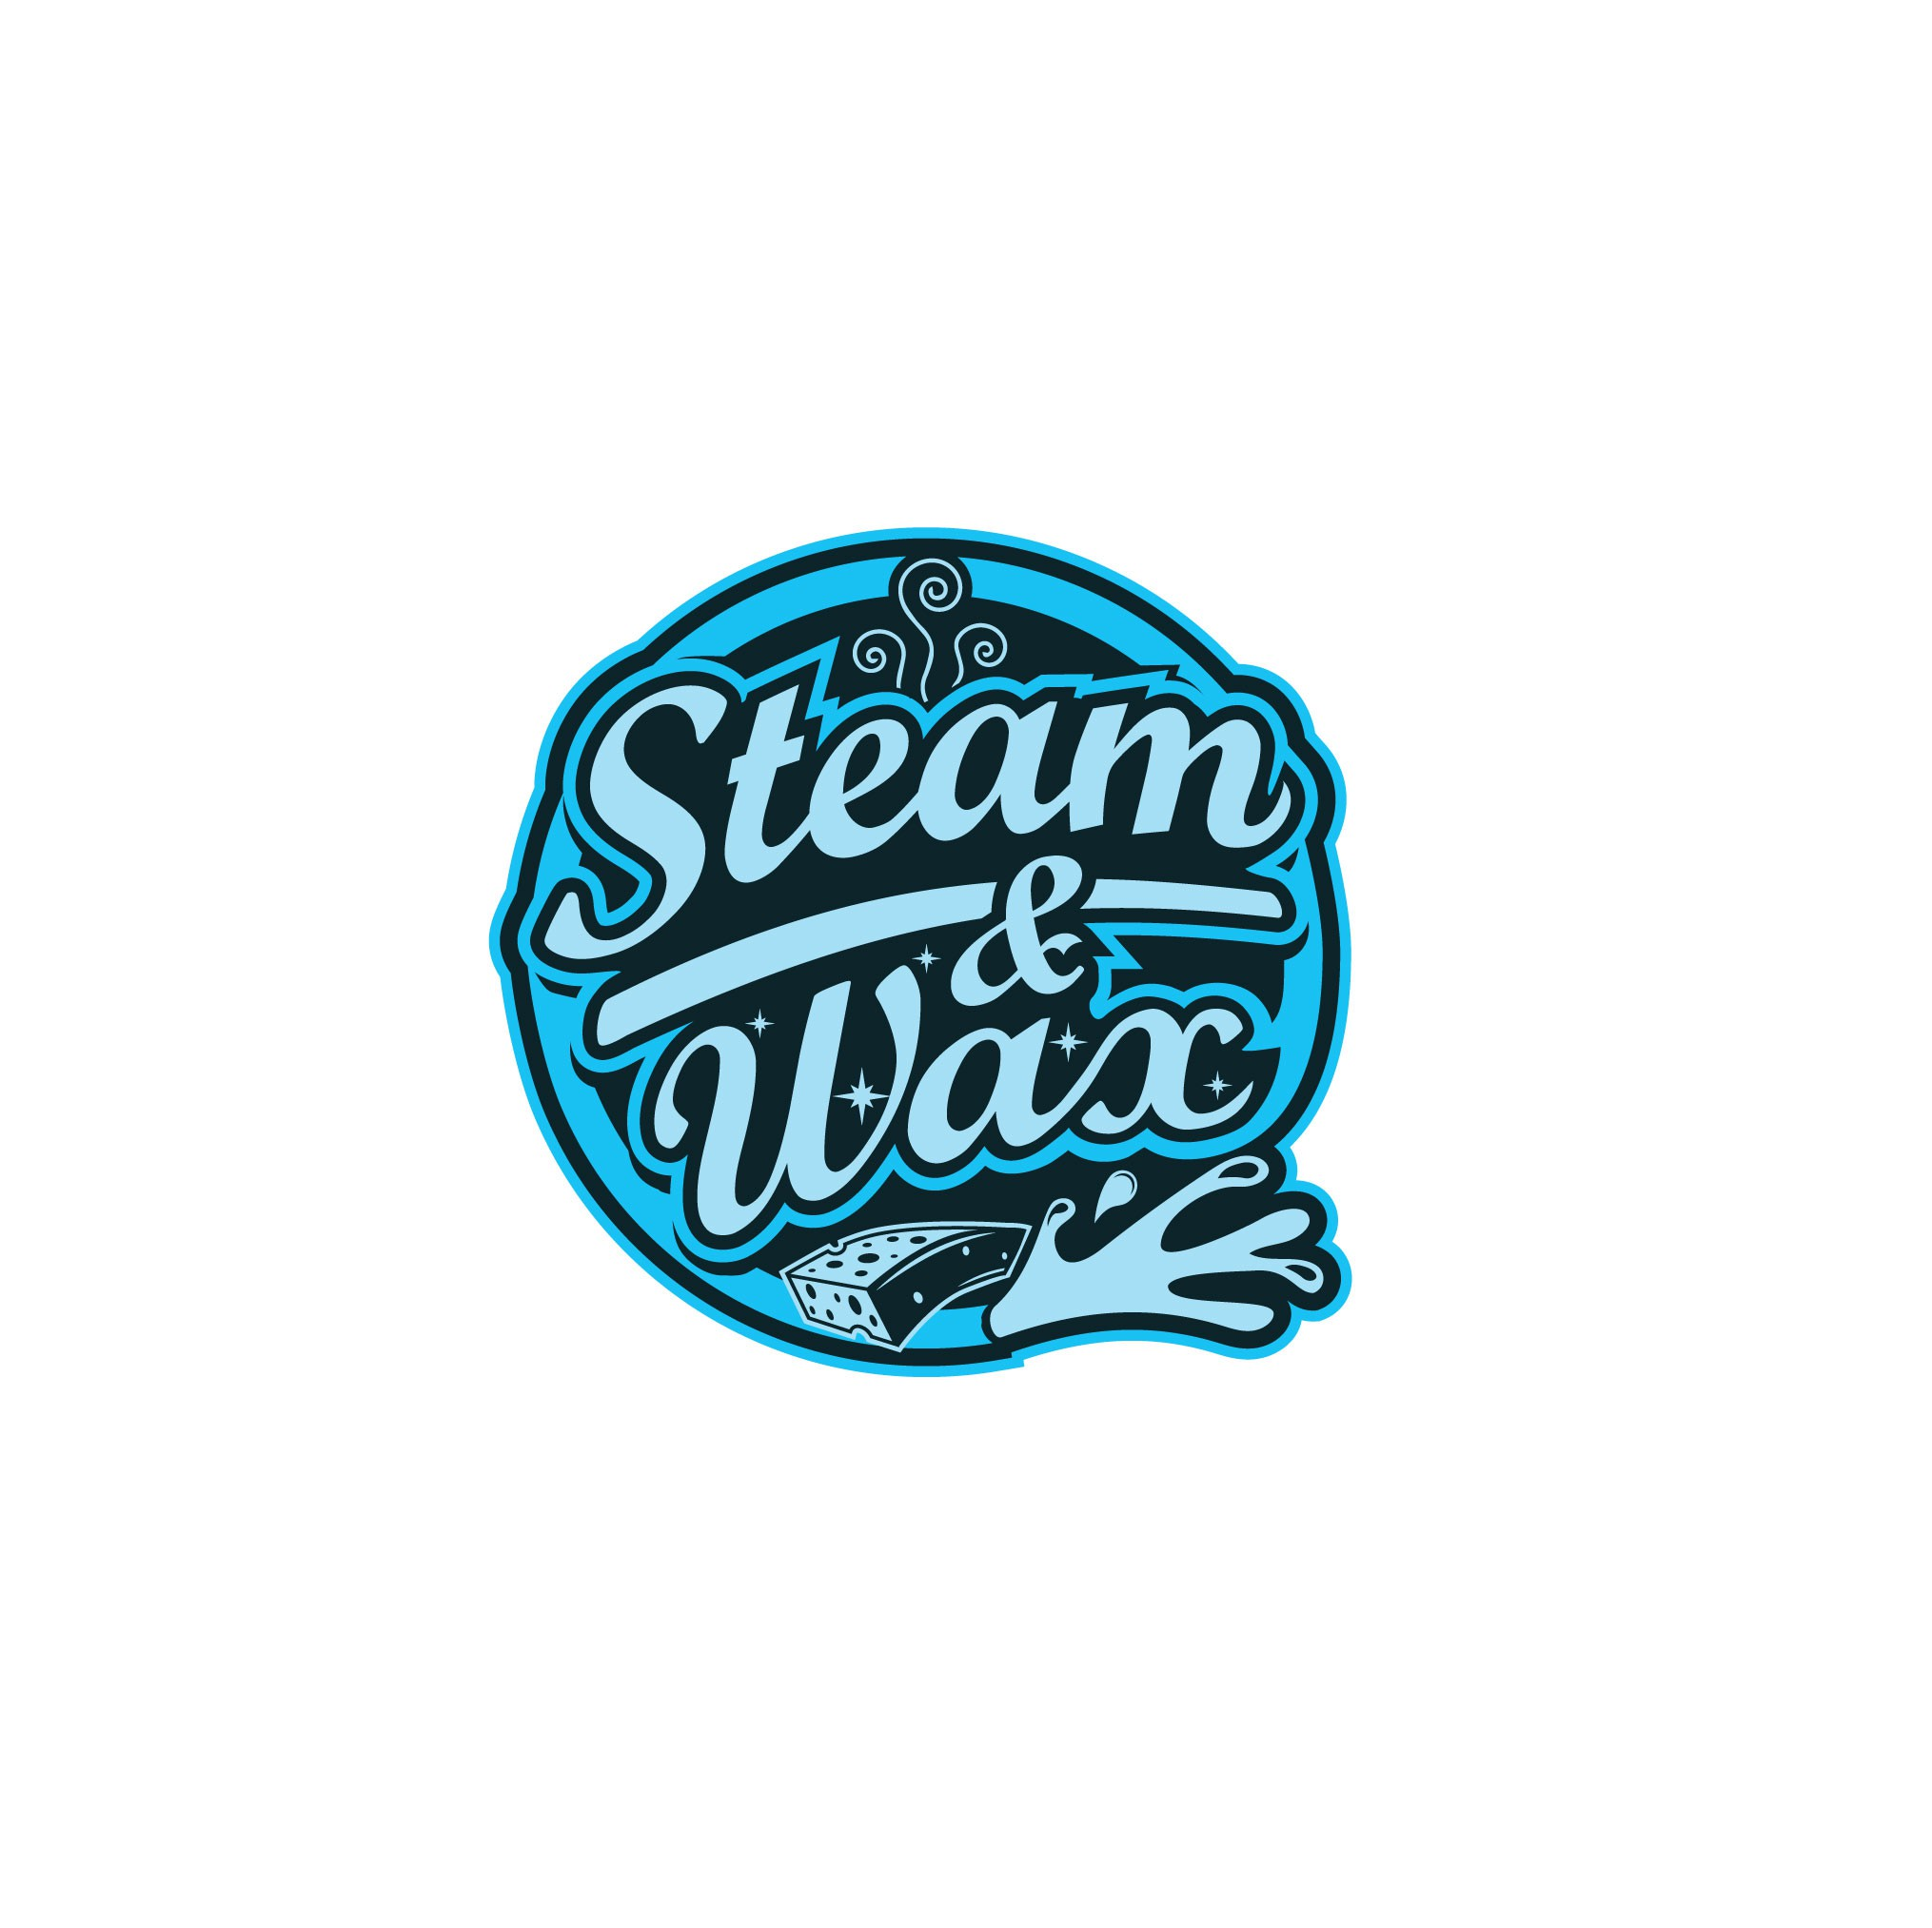 Cleaning Services: Carwash, mobile cleaning and detailing services for cars, houses, buidings, vehicles, by steams, etc